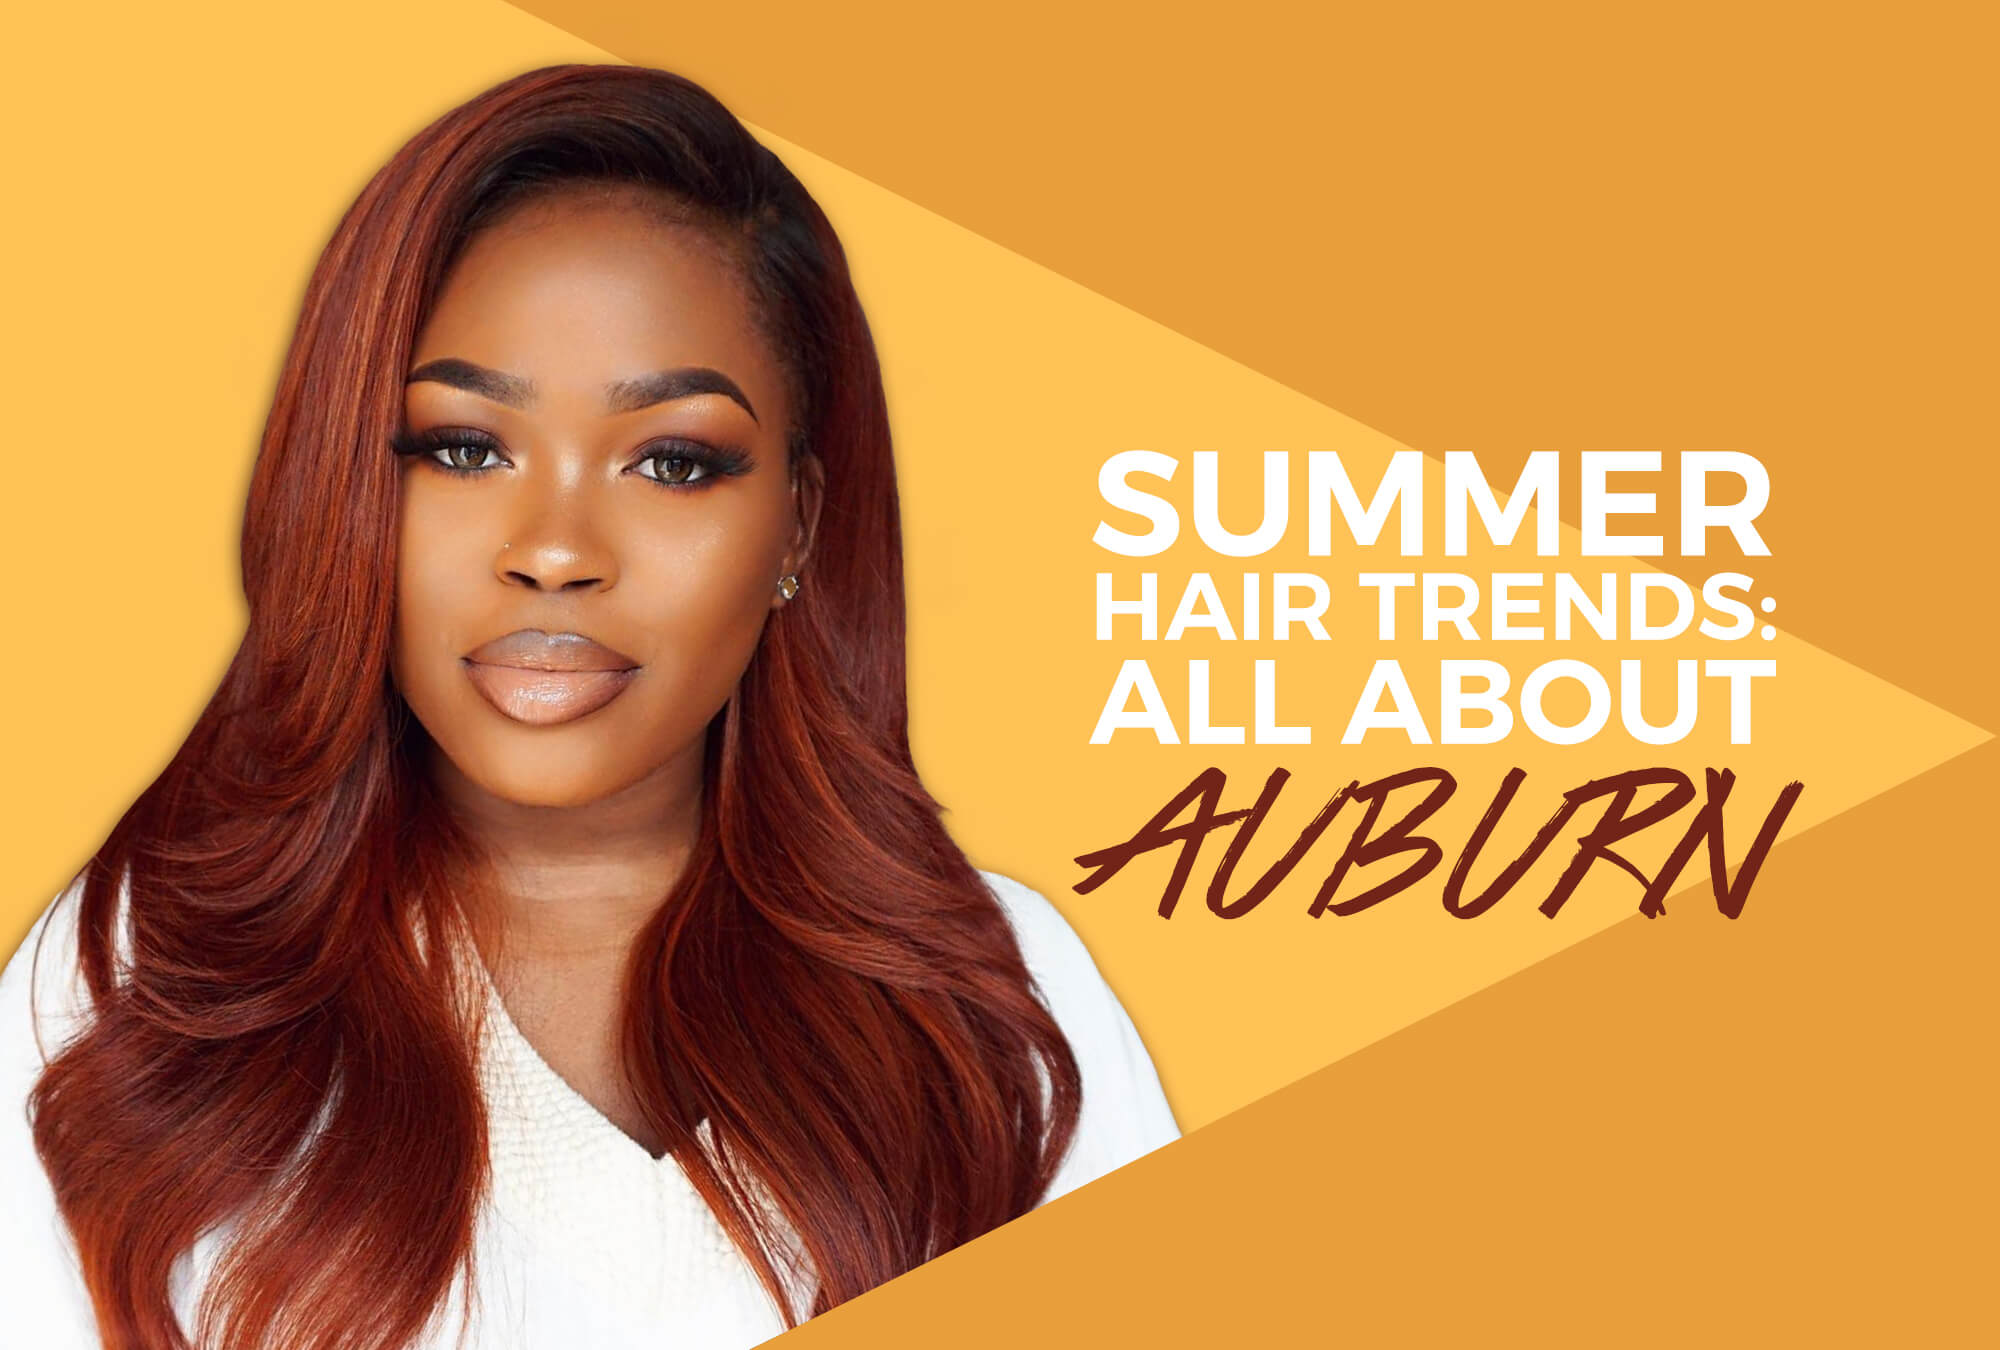 Sunkissed Locks It's All About Auburn Hair This Spring